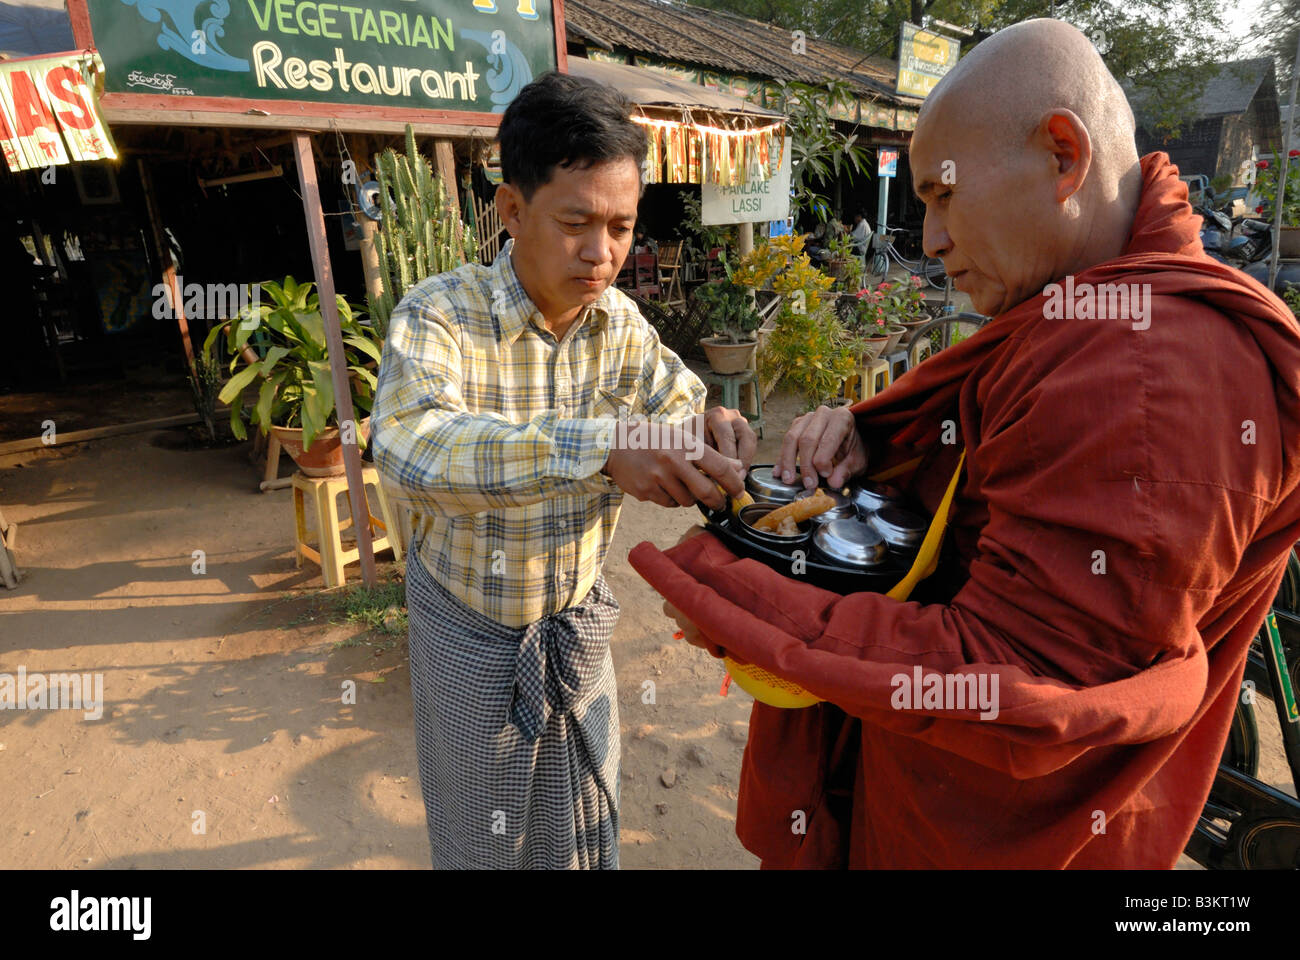 the Buddhist monk was going on a daily almsround (or pindacara) to collect food in Nyaung U township, Myanmar. Stock Photo